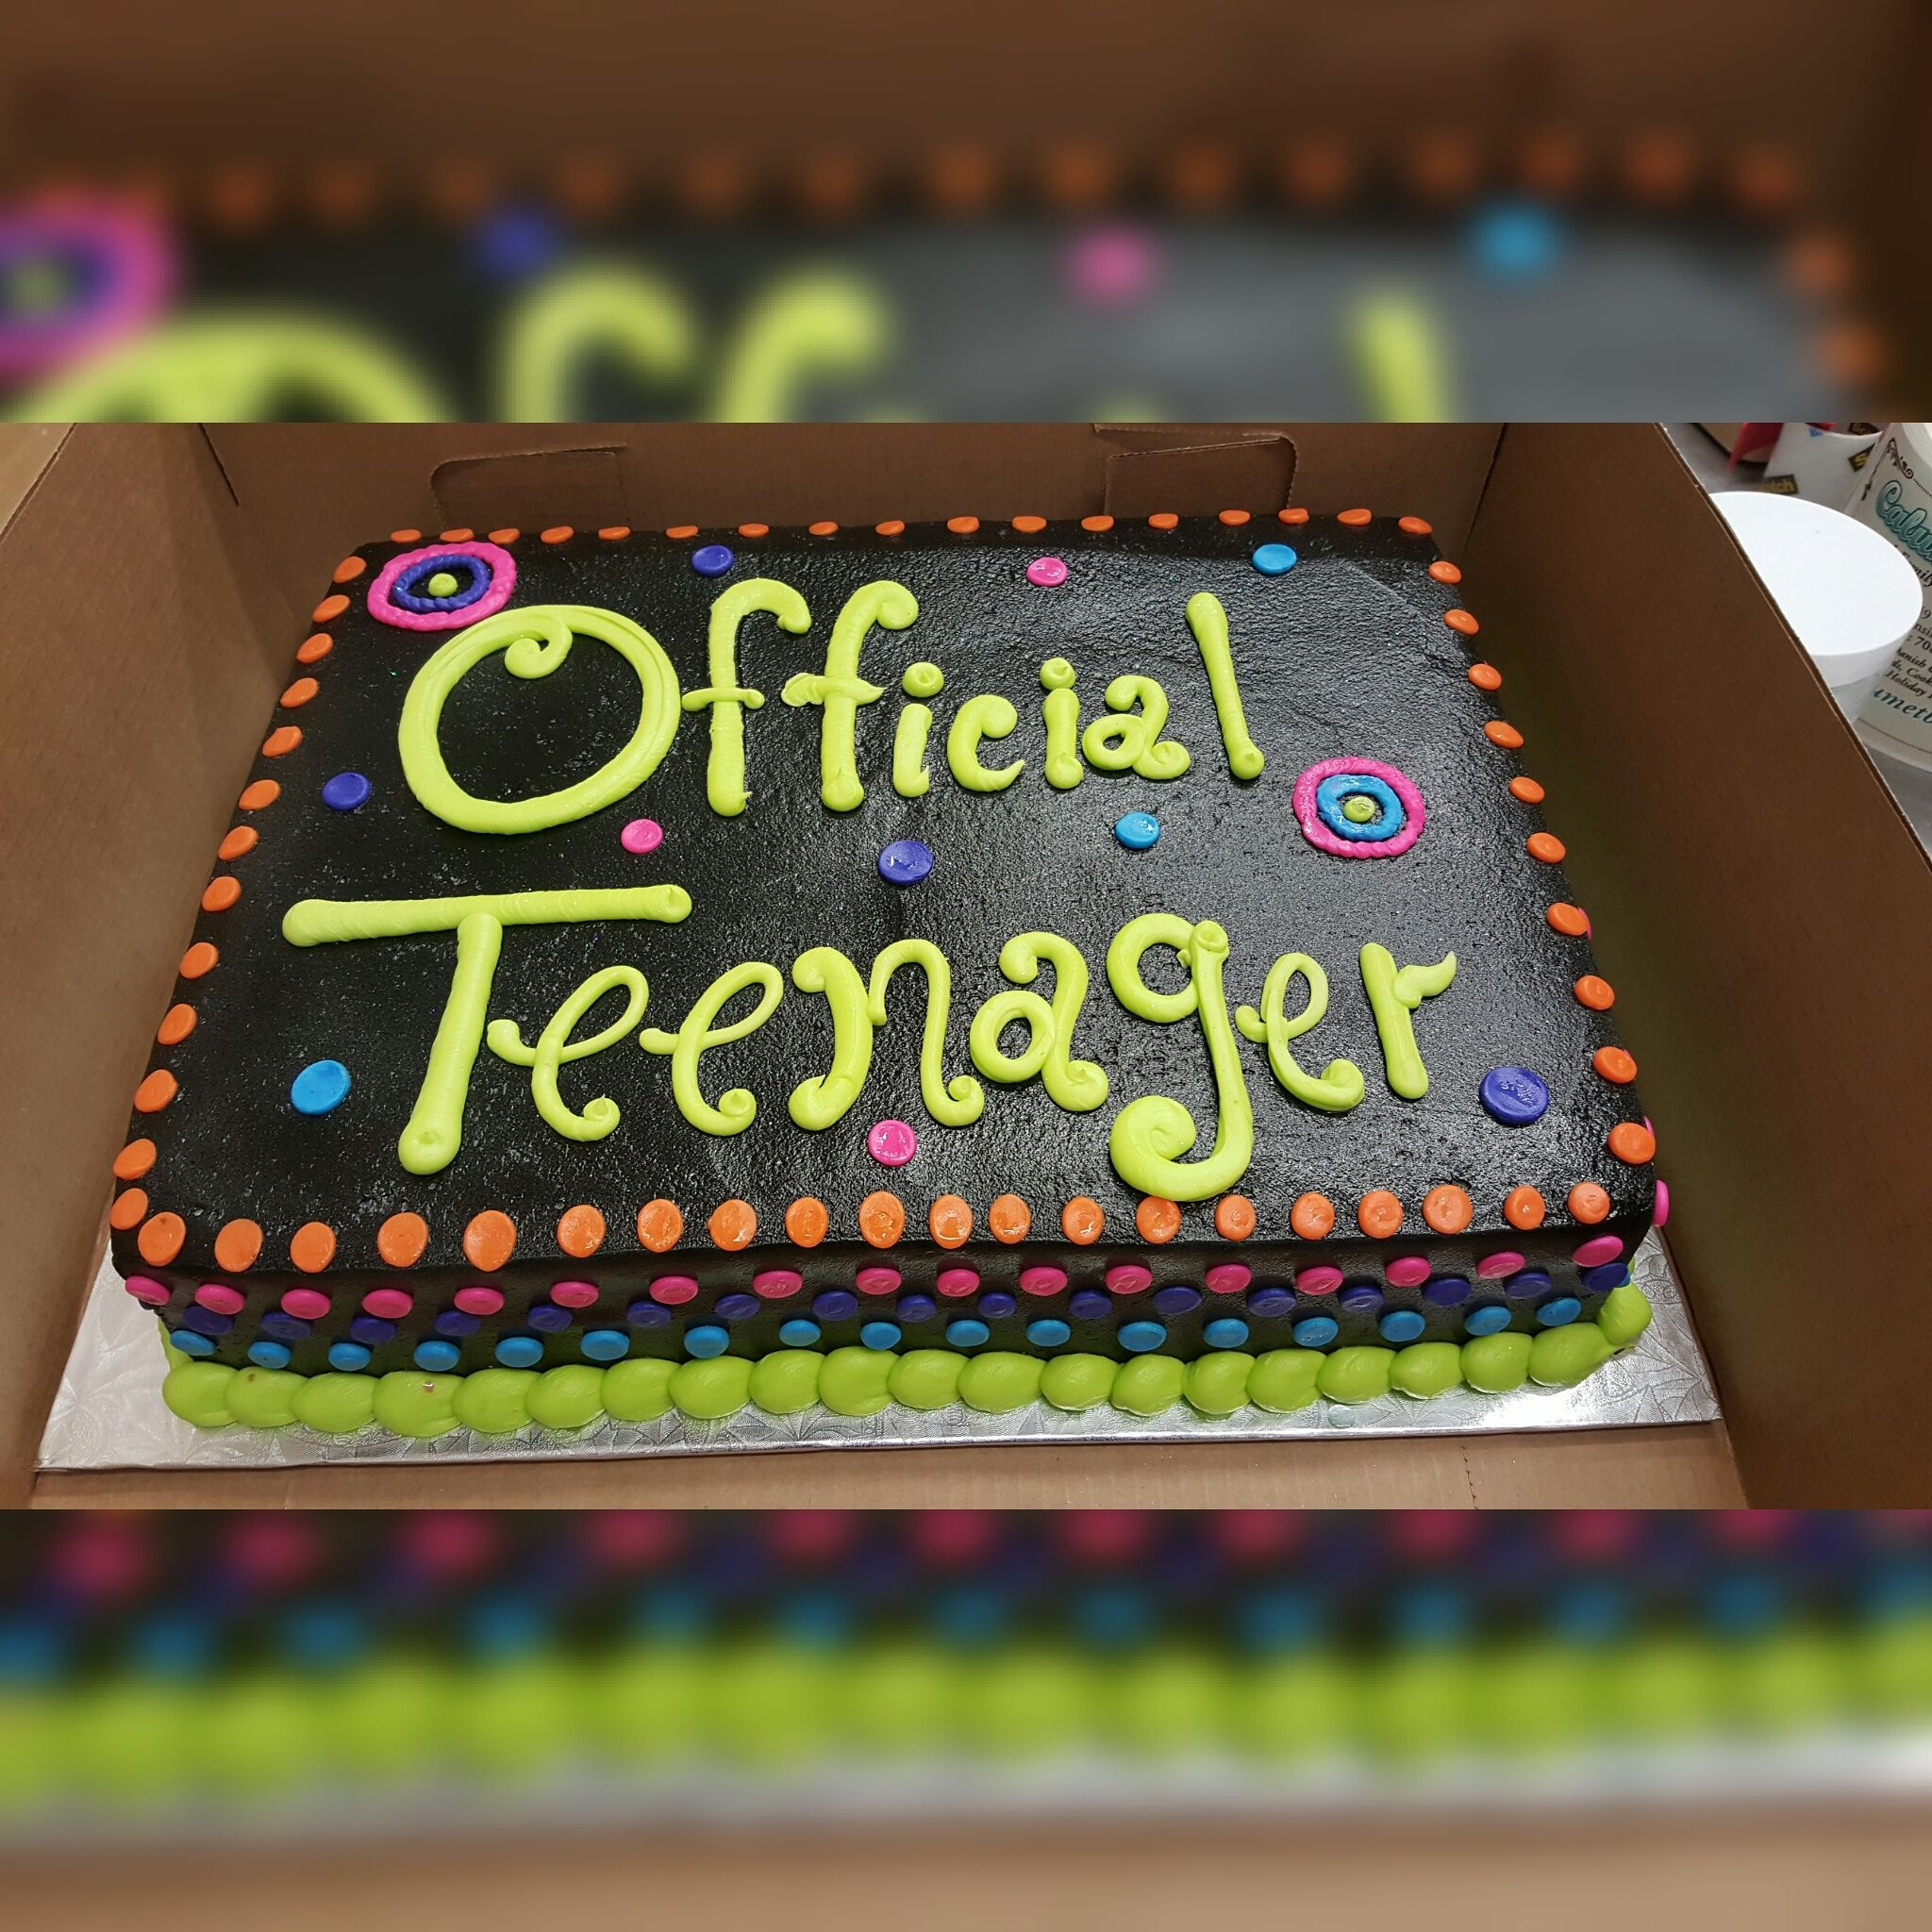 Calumet Bakery Official Teenager Cake 13th Birthday